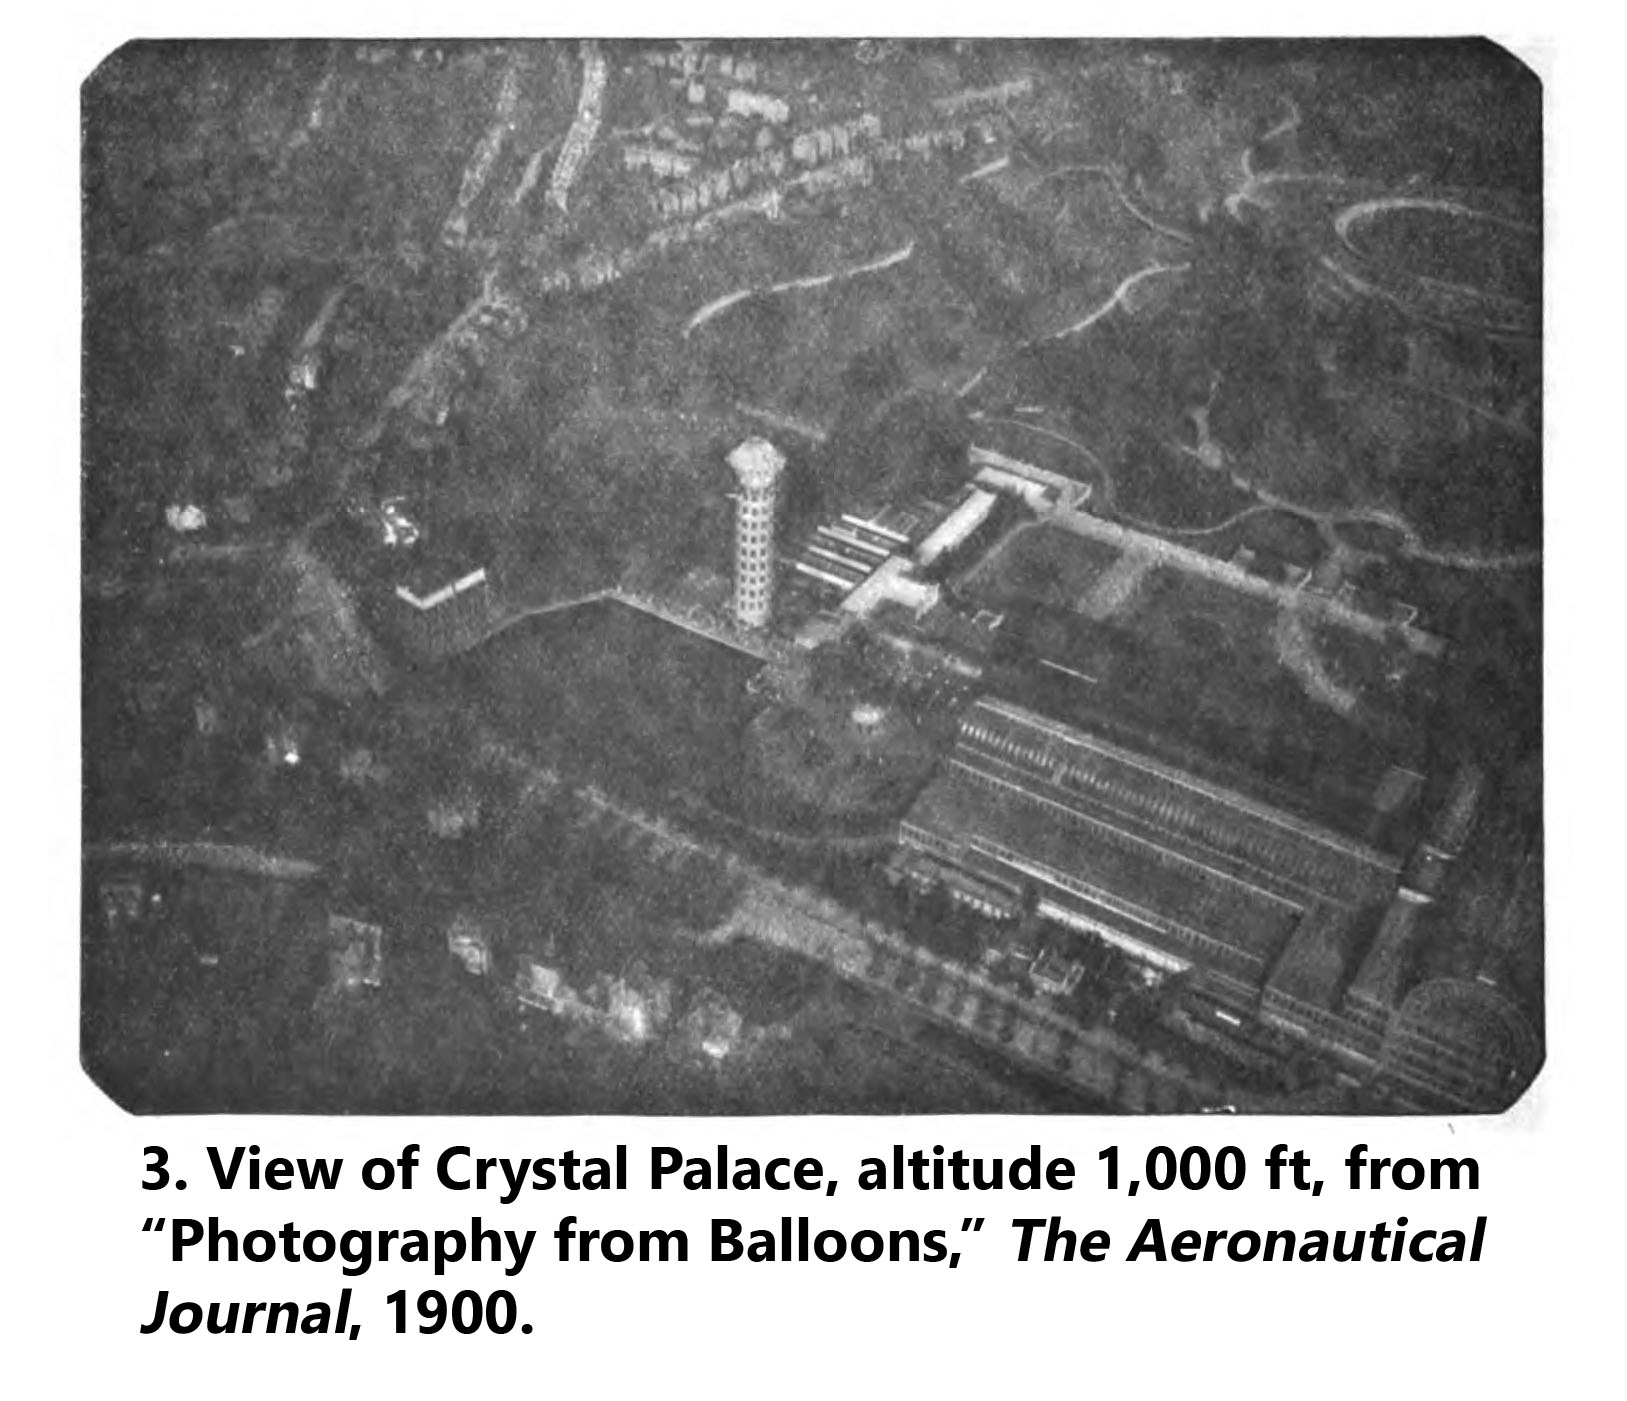 Aerial photo of the Crystal Palace in London from 1,000 ft, 1900